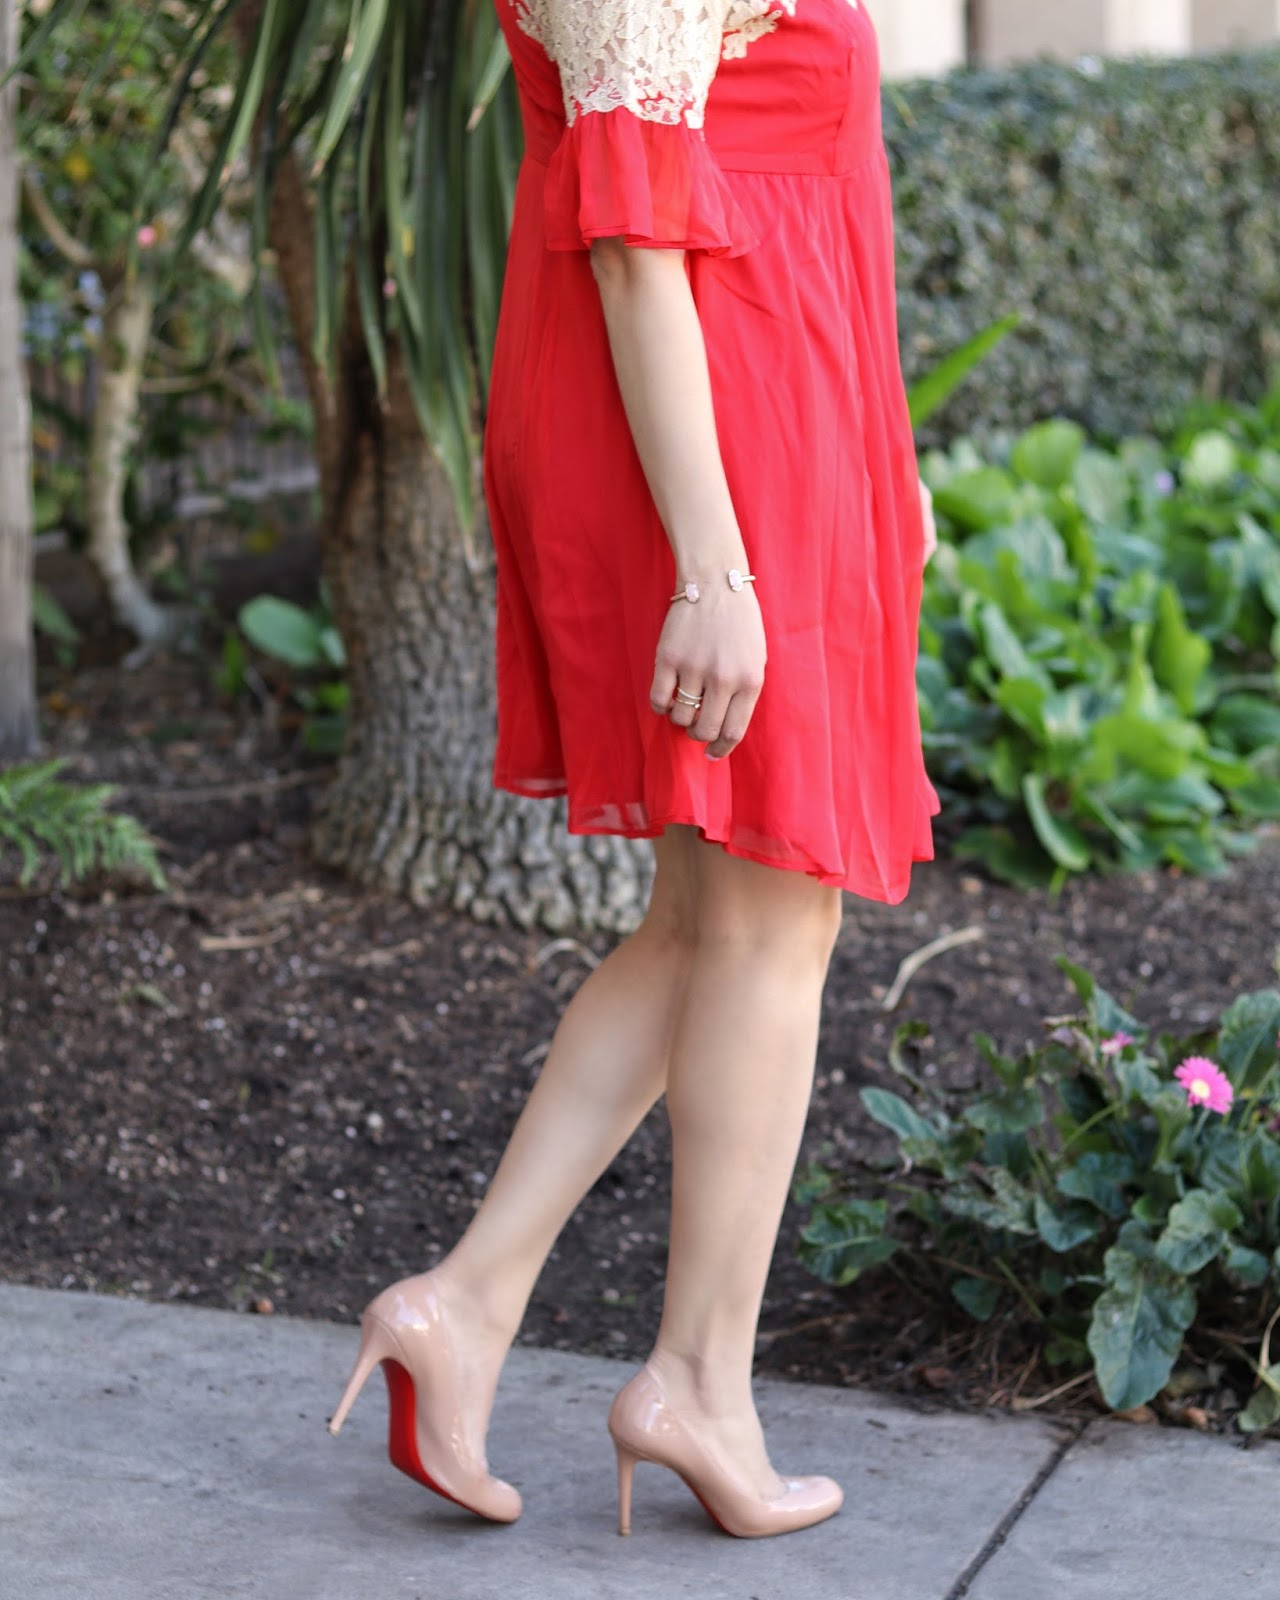 Nude patent leather Christian Louboutin, kendra scott rose gold bracelet, flowy red dress